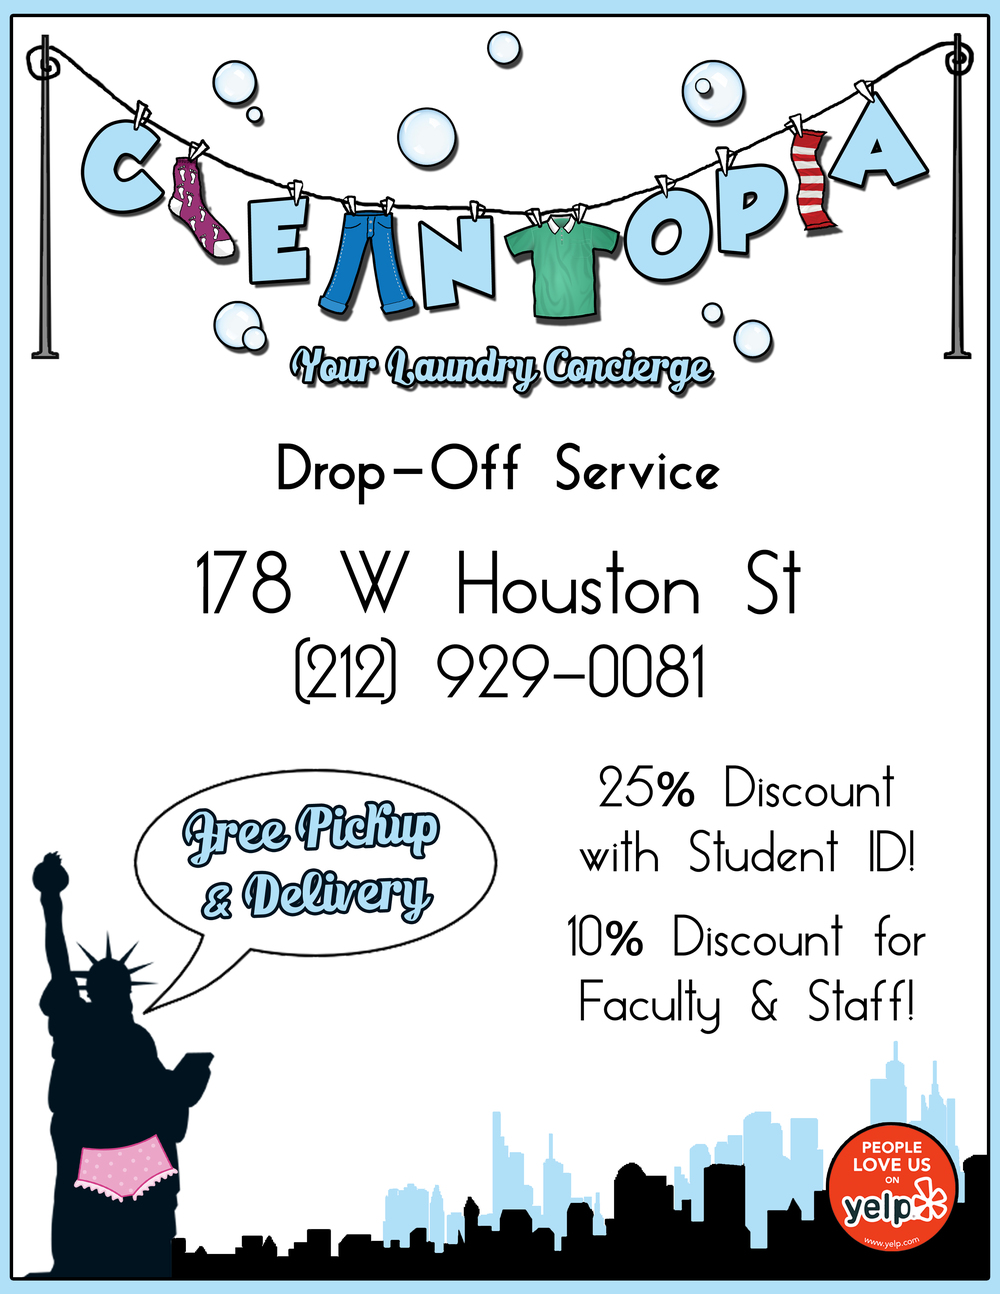 FLYER/LOGO DESIGN FOR CLEANTOPIA LAUNDRY SERVICE